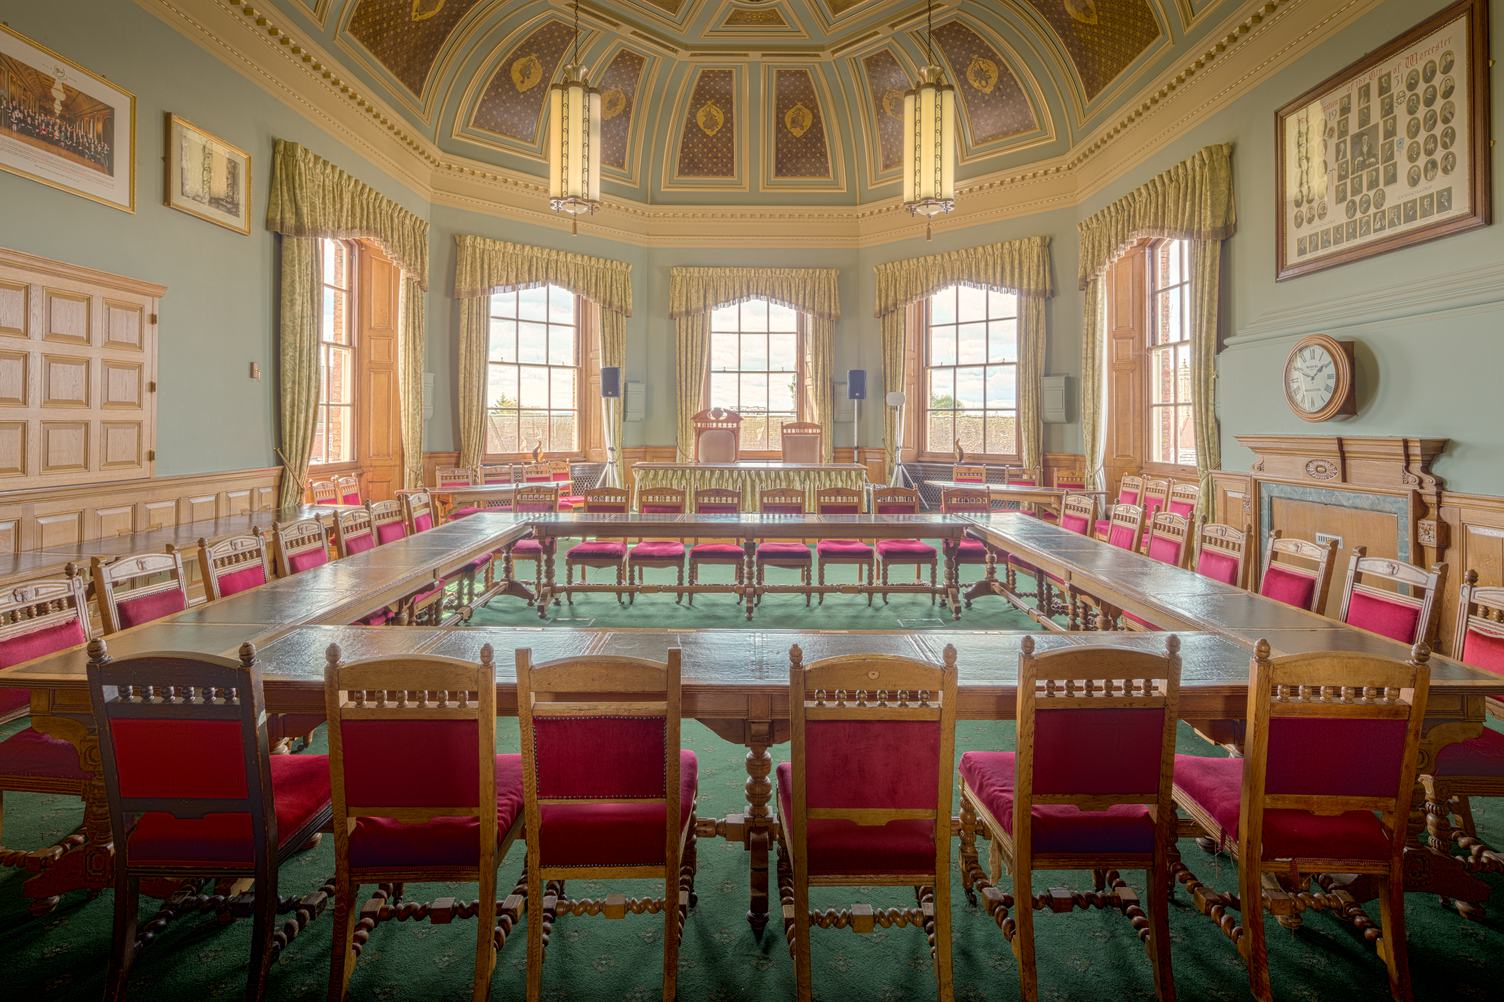 Guildhall Interior Council Chambers, Worcester, England